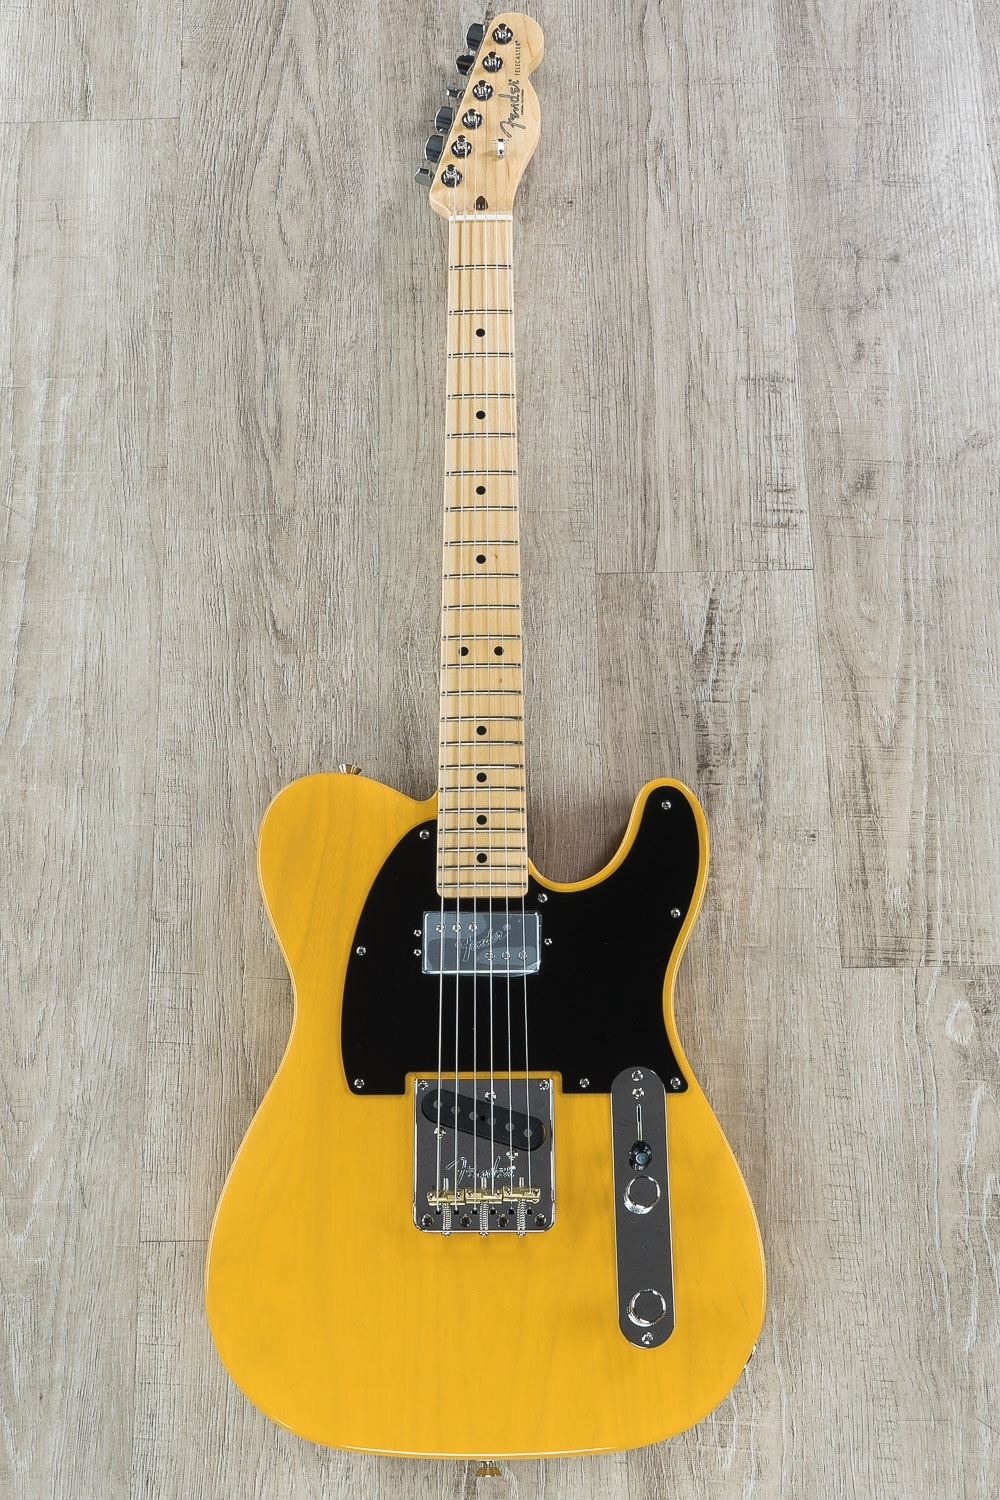 pitbull audio fender 2018 limited edition american professional telecaster electric guitar. Black Bedroom Furniture Sets. Home Design Ideas